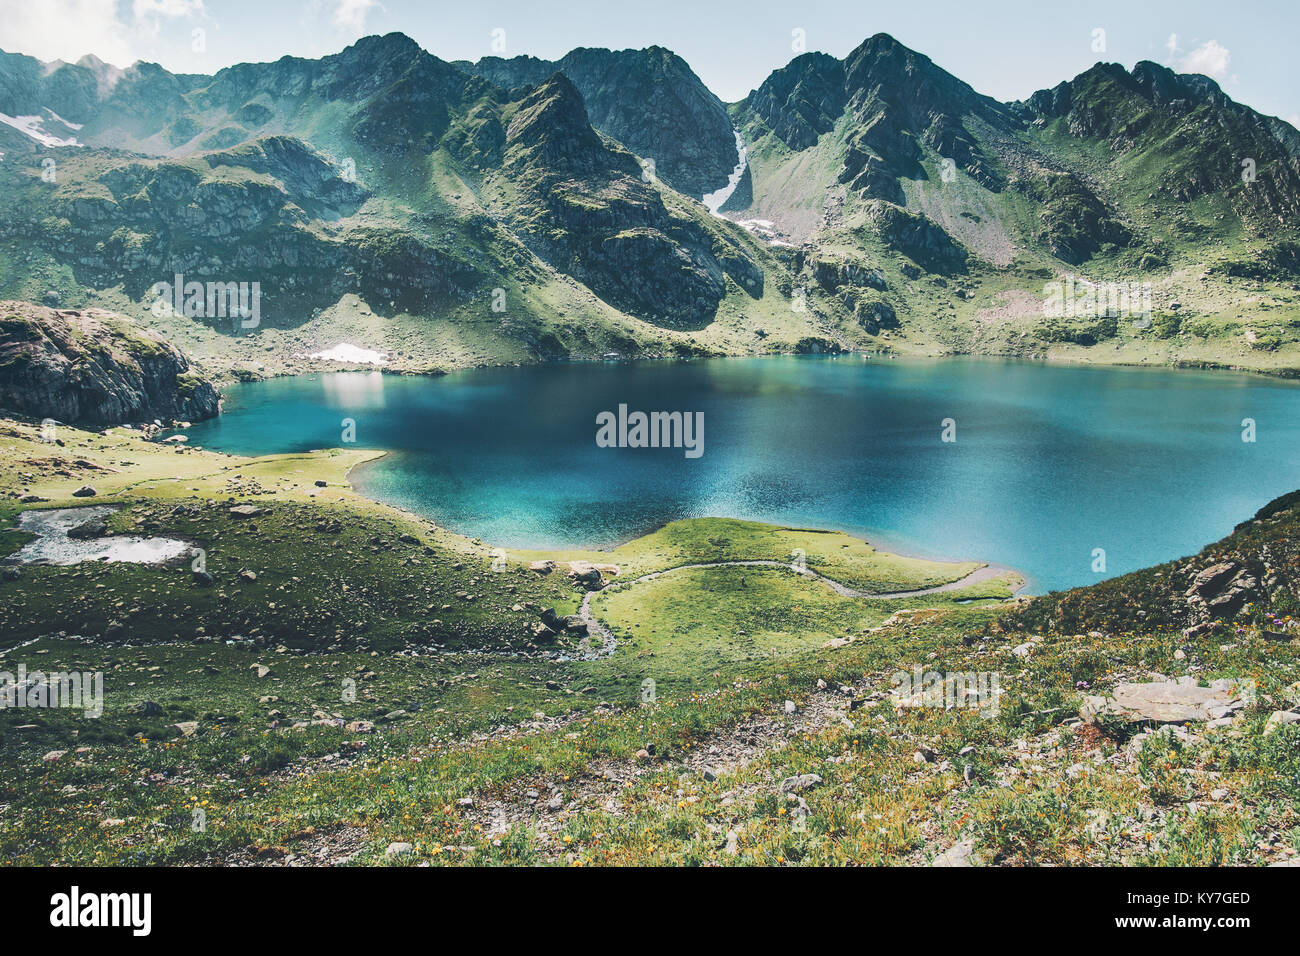 Turquoise Lake and Mountains range Landscape Summer Travel serene aerial view - Stock Image